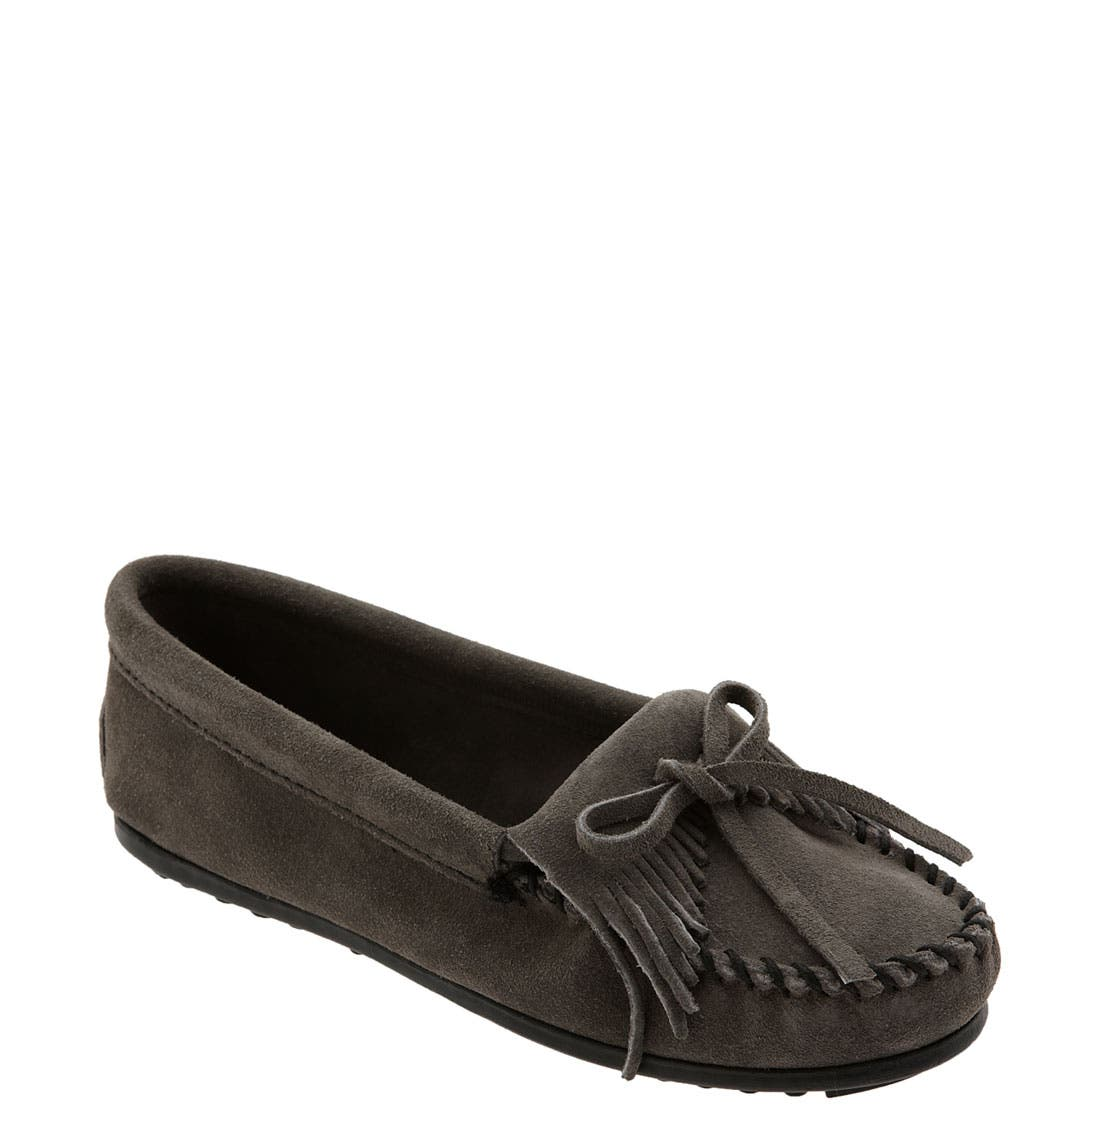 MINNETONKA, 'Kilty' Suede Moccasin, Main thumbnail 1, color, GREY